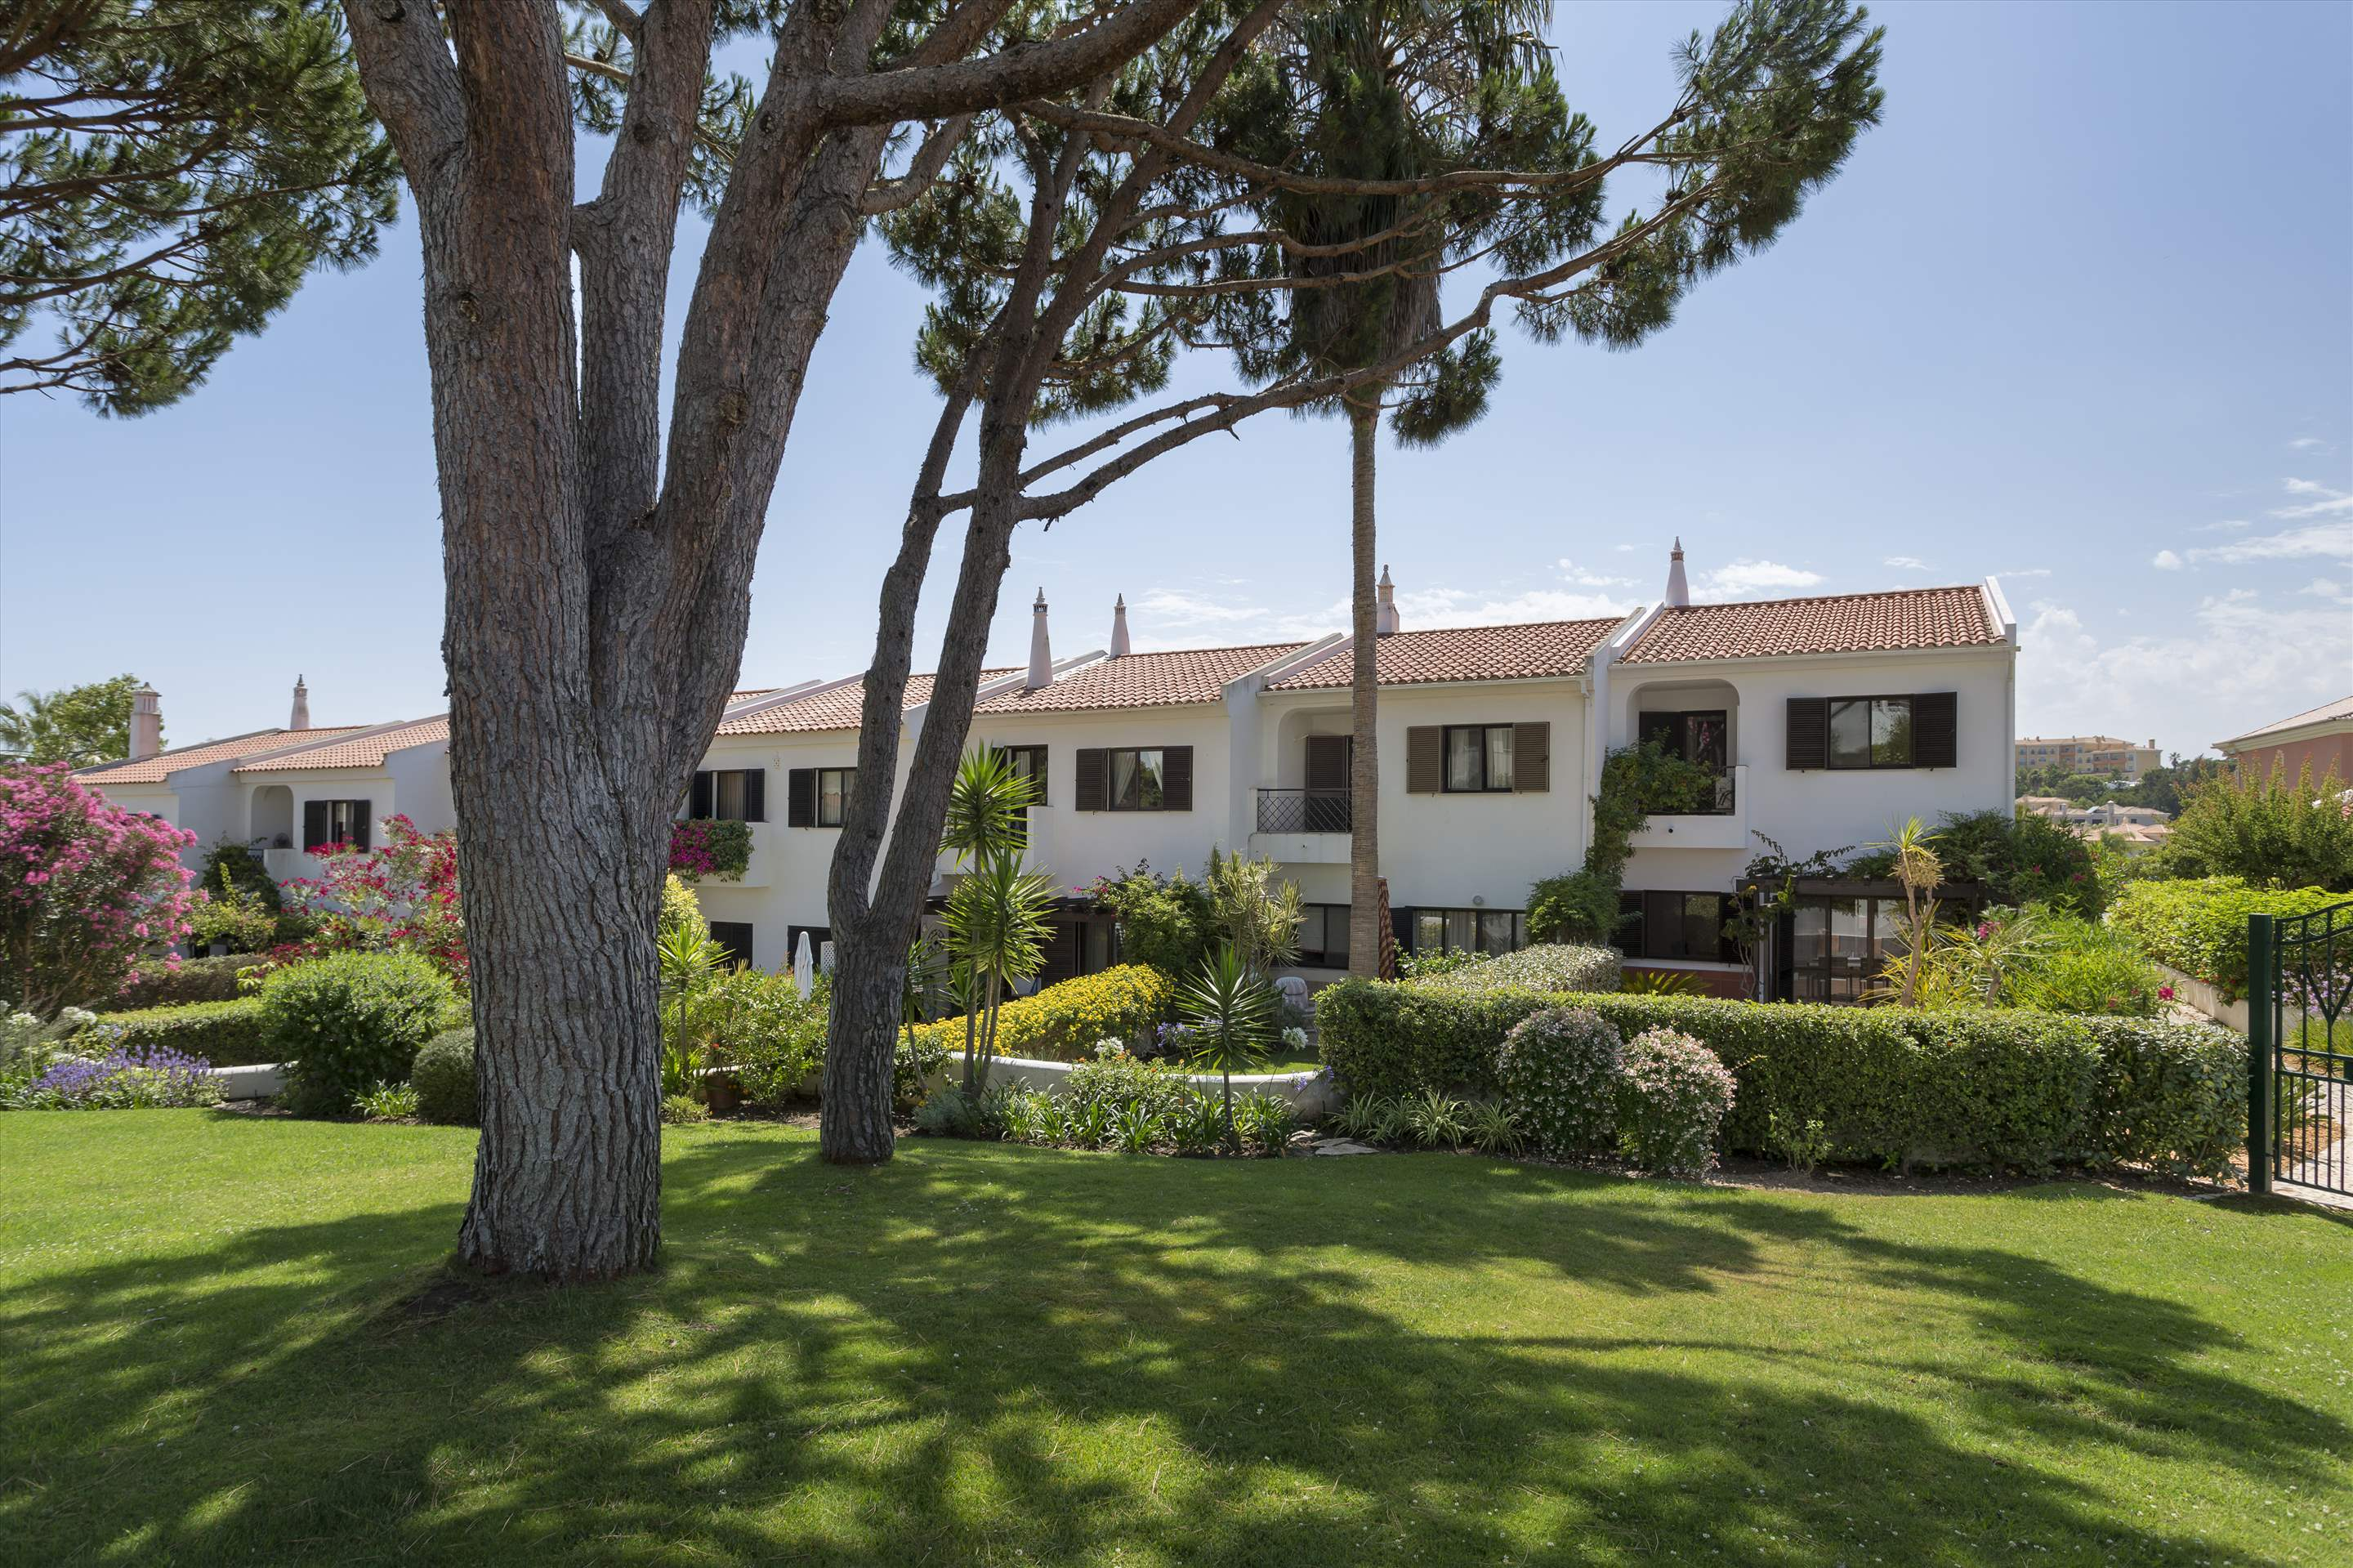 Villa Xavier, 3 bedroom villa in Quinta do Lago, Algarve Photo #1